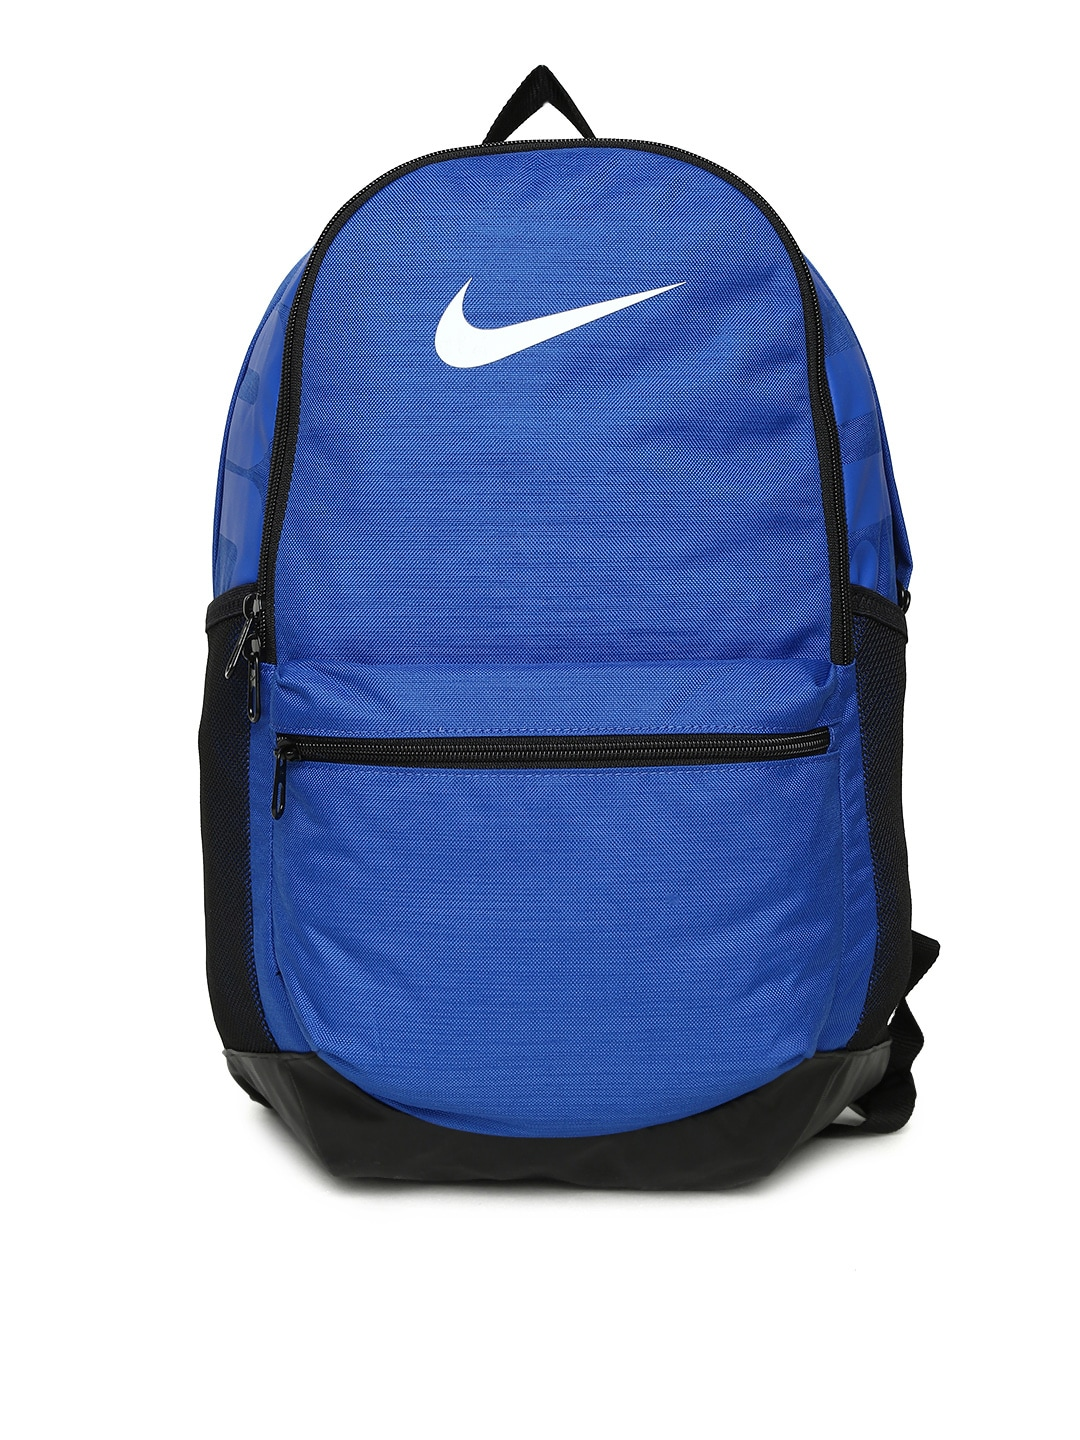 d3d40b7d132f Nike Blue Backpacks Flip Flops - Buy Nike Blue Backpacks Flip Flops online  in India